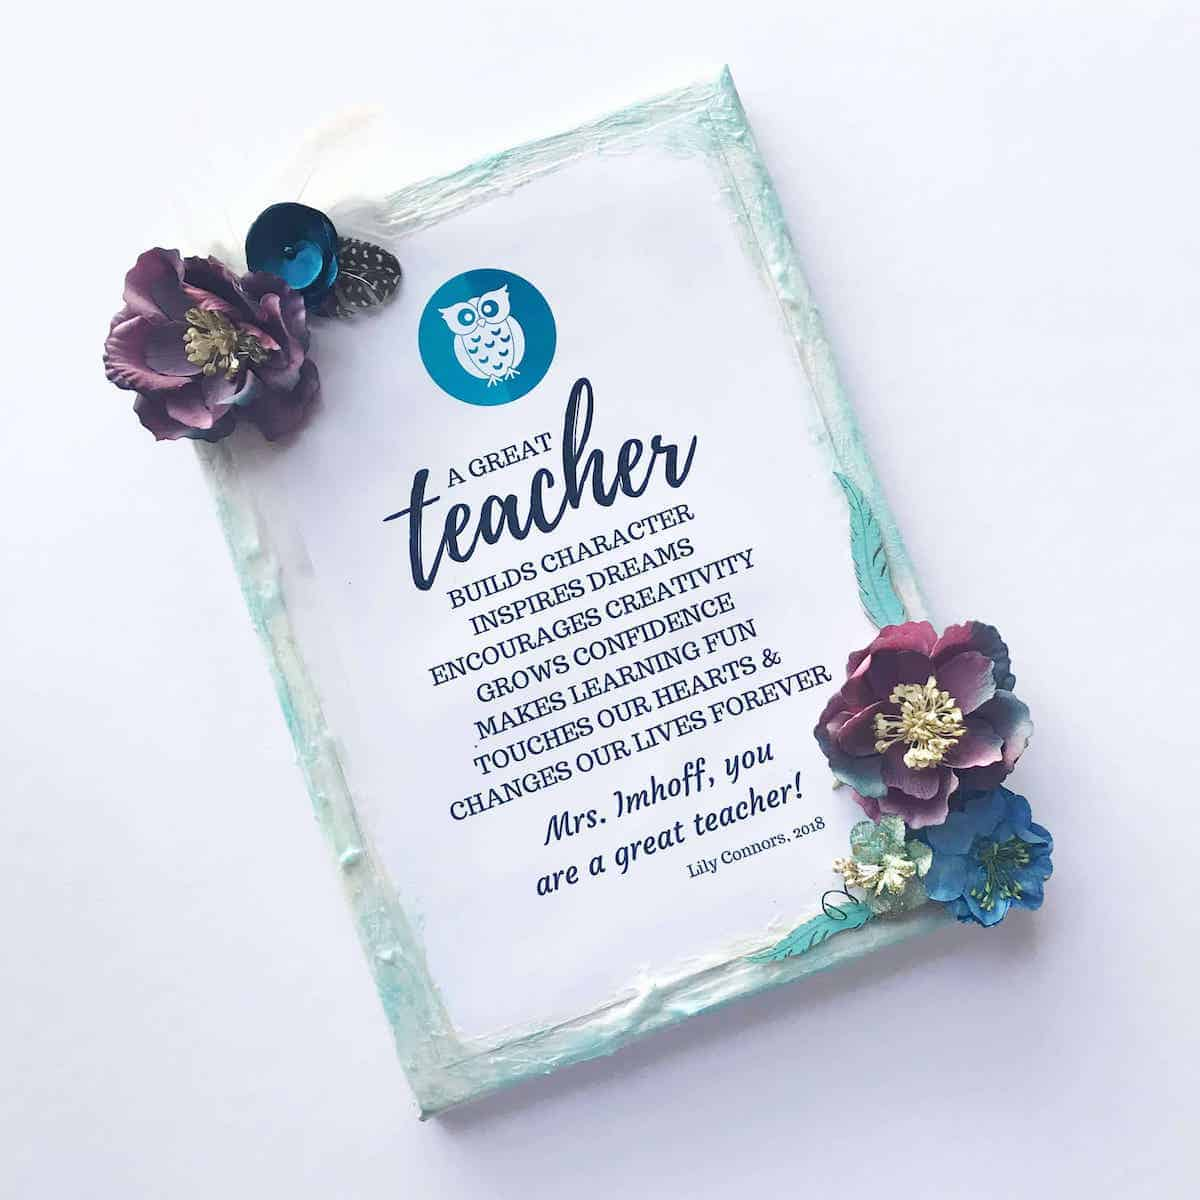 Diy teacher gift canvas